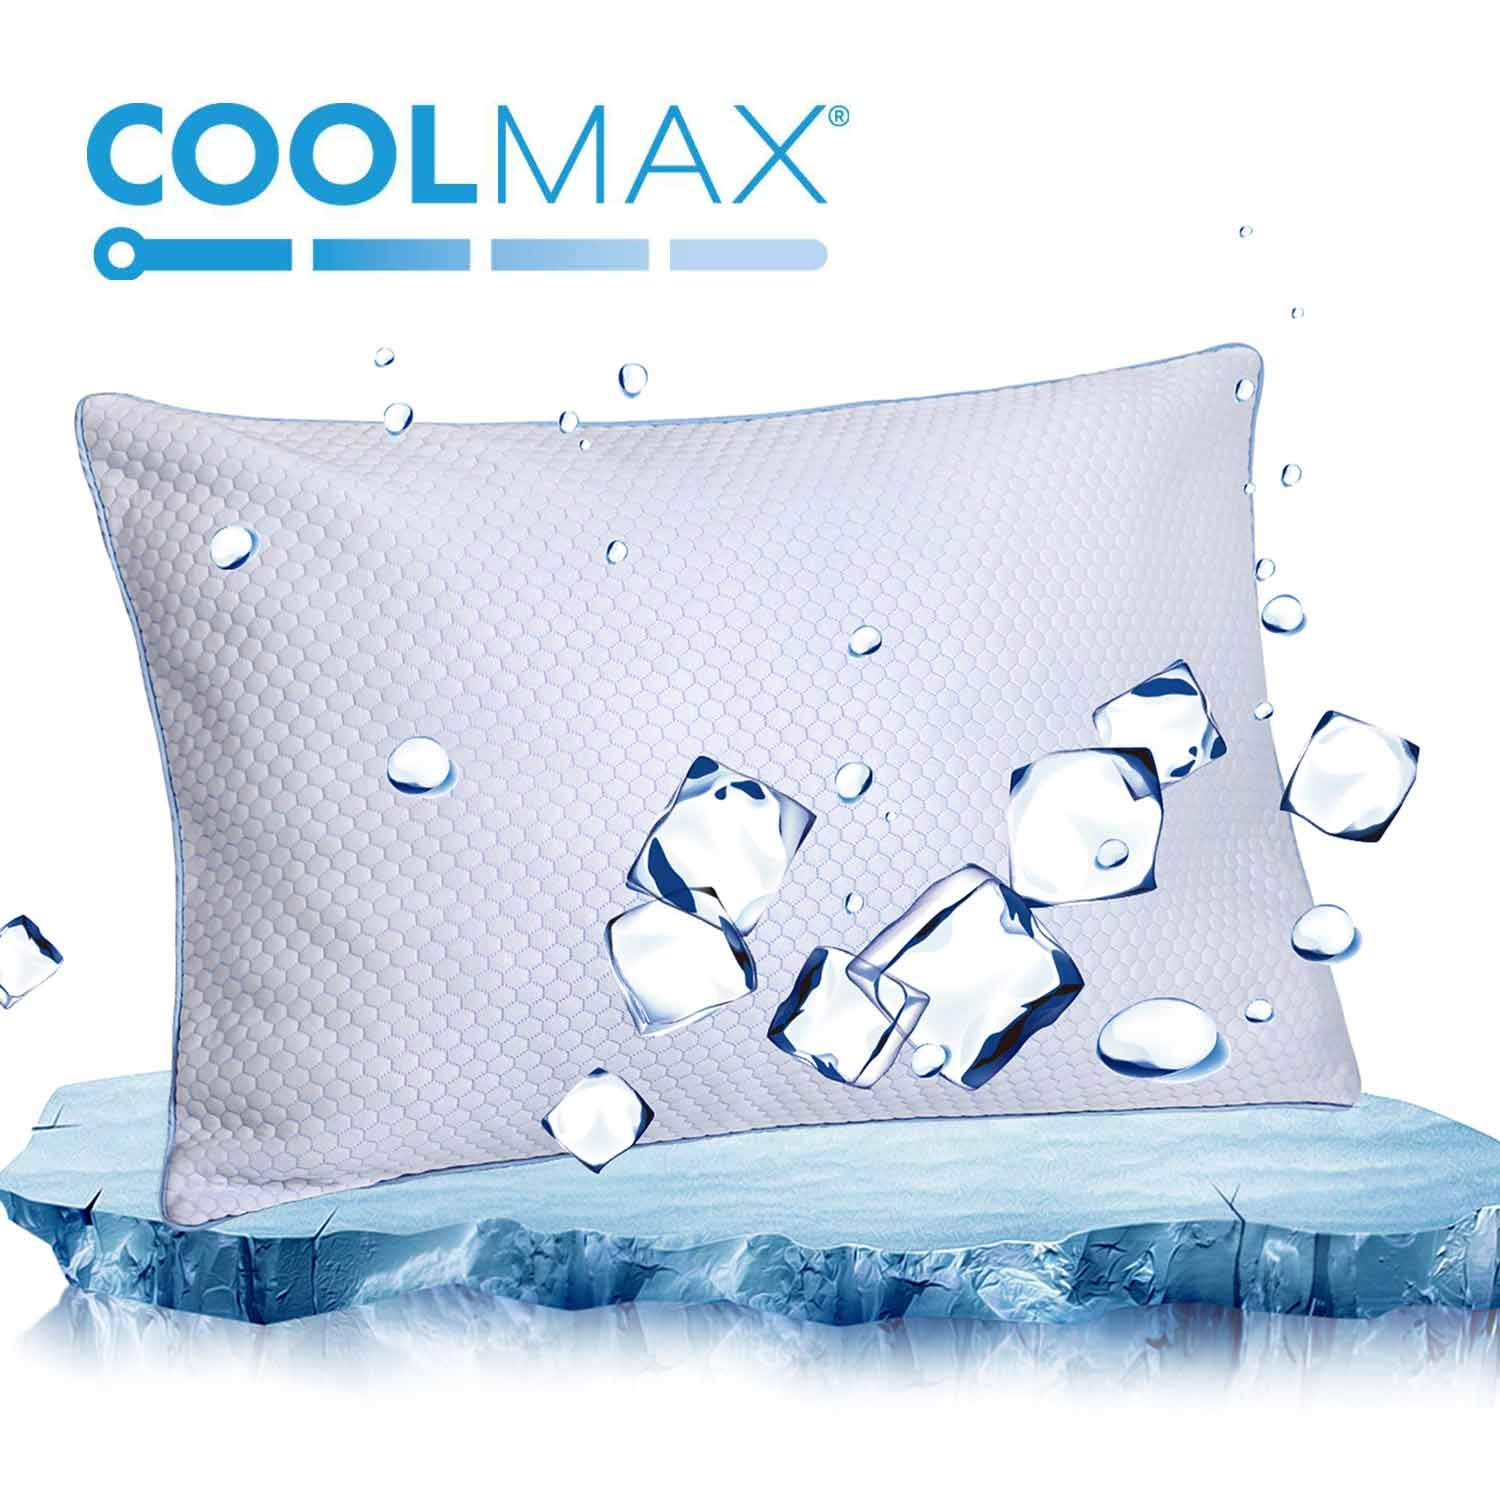 Cooling Shredded Memory Foam Bed Pillow for Sleeping- Adjustable to Thick Thin - Pillow for Side Back Sleepers with Cool Breathable Cotton Case - Soft Firm Support for Therapeutic Neck Pain,Queen Size by homentality